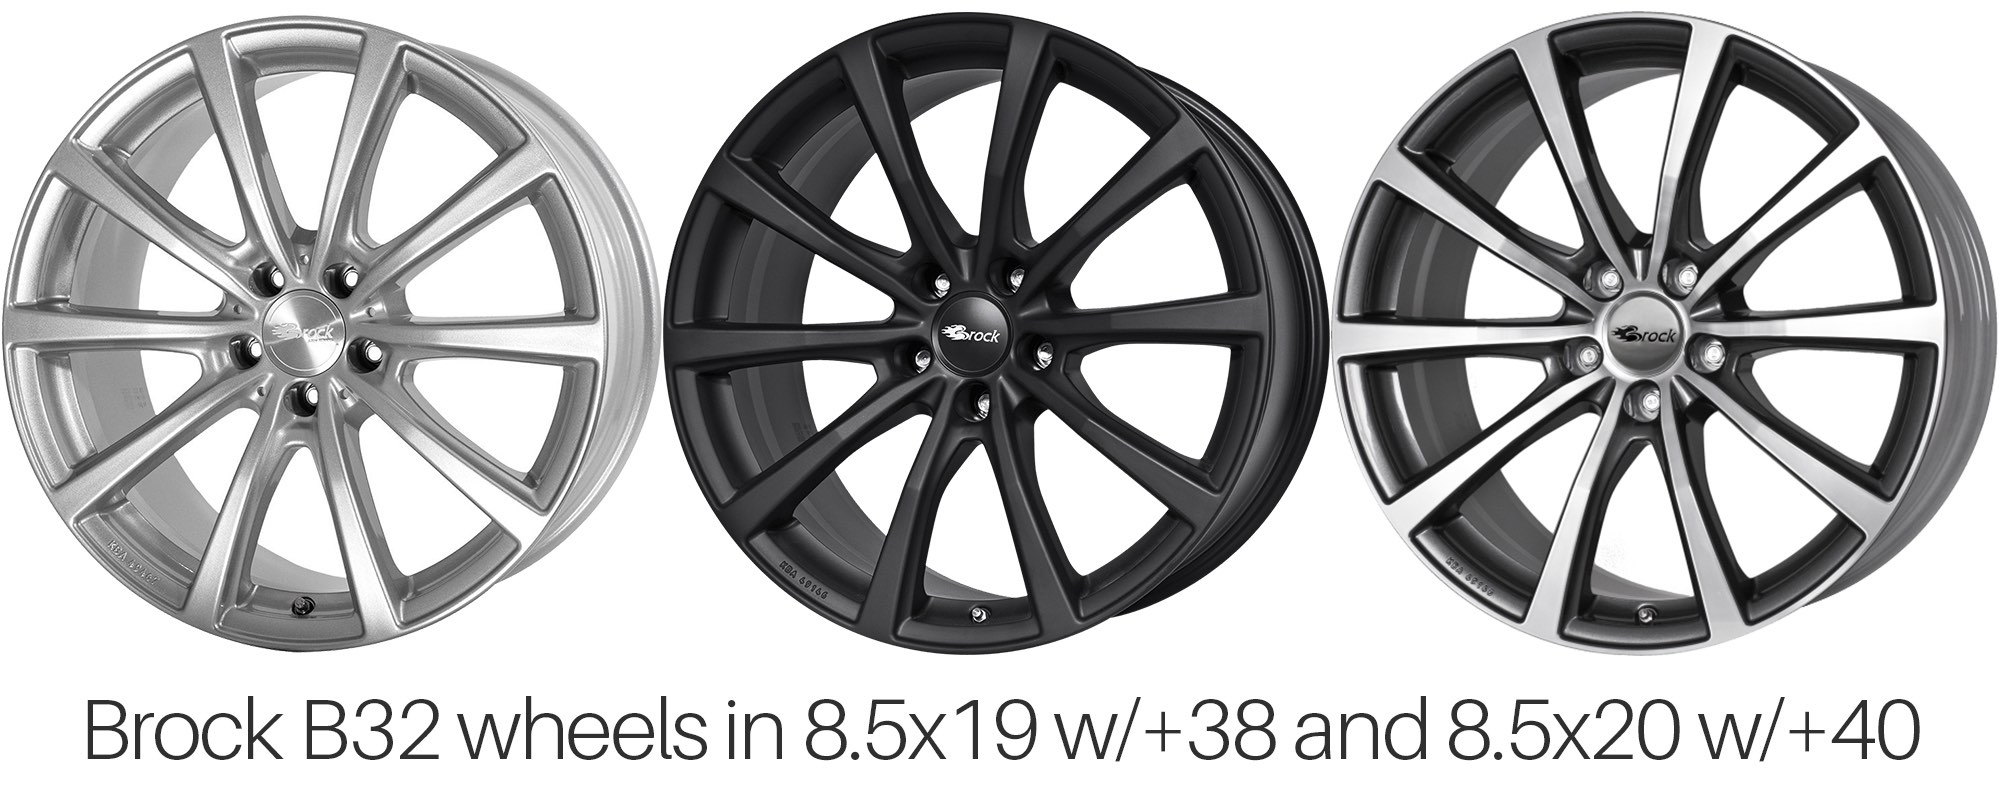 Brock B32 Wheels for Tesla Model S